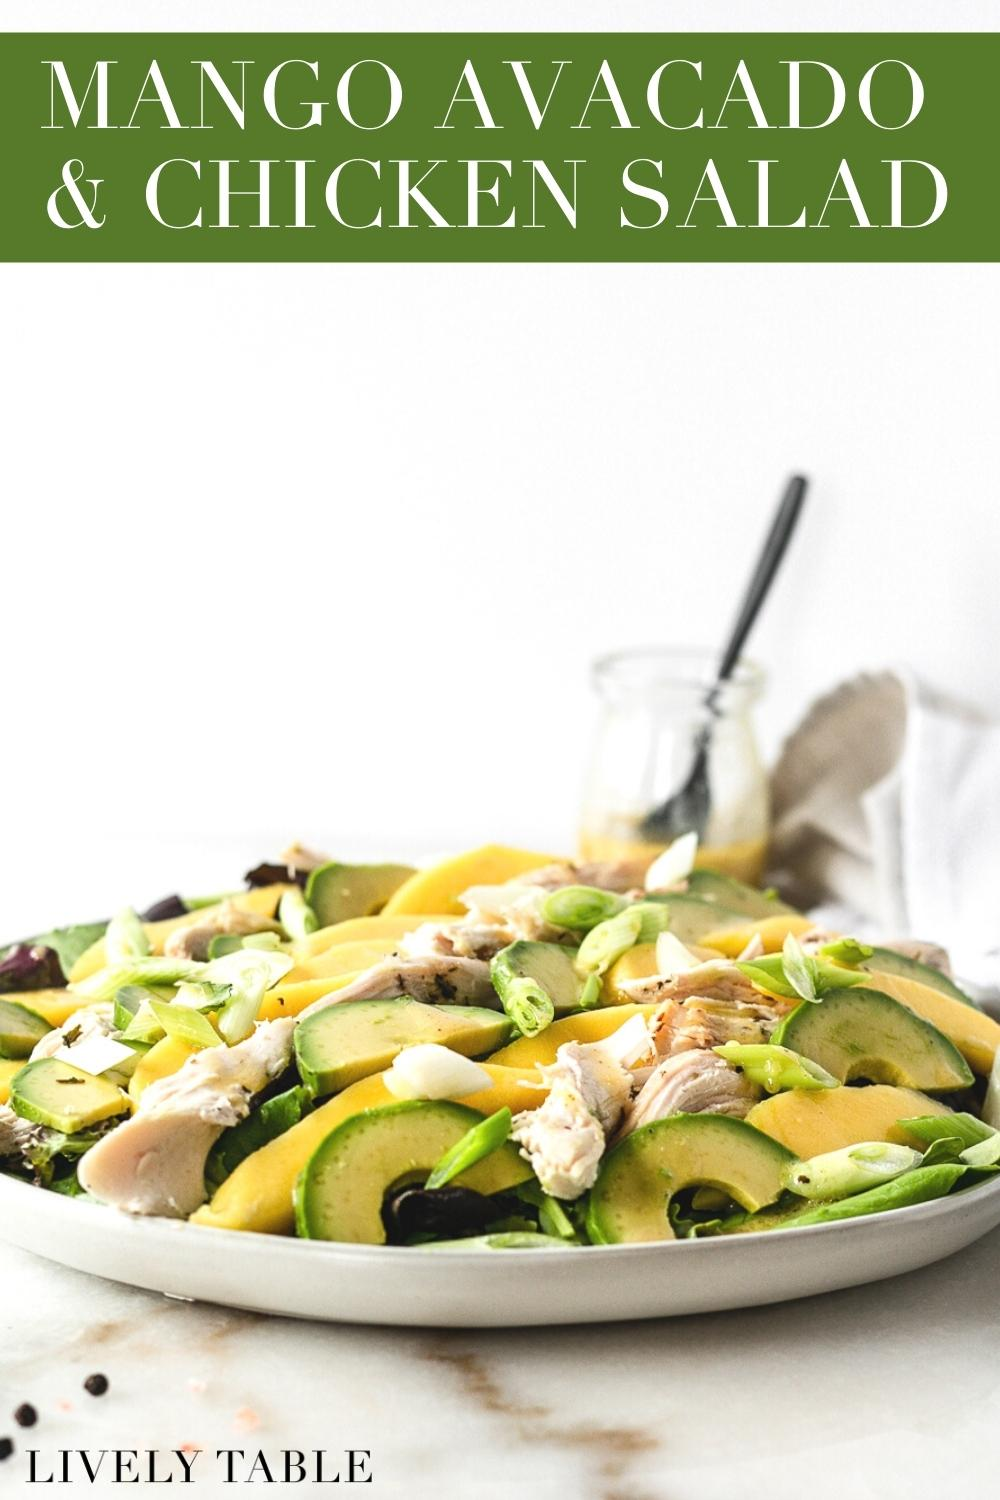 A simple and delicious mango, avocado and roasted chicken salad with a honey dijon lemon vinaigrette is a great lunch or light summer dinner. It's easy, healthy, and can even be made with rotisserie chicken!#glutenfree #roastedchicken #salad #mango #avocado #healthy #summer #easy #simplerecipe #under30 #under15